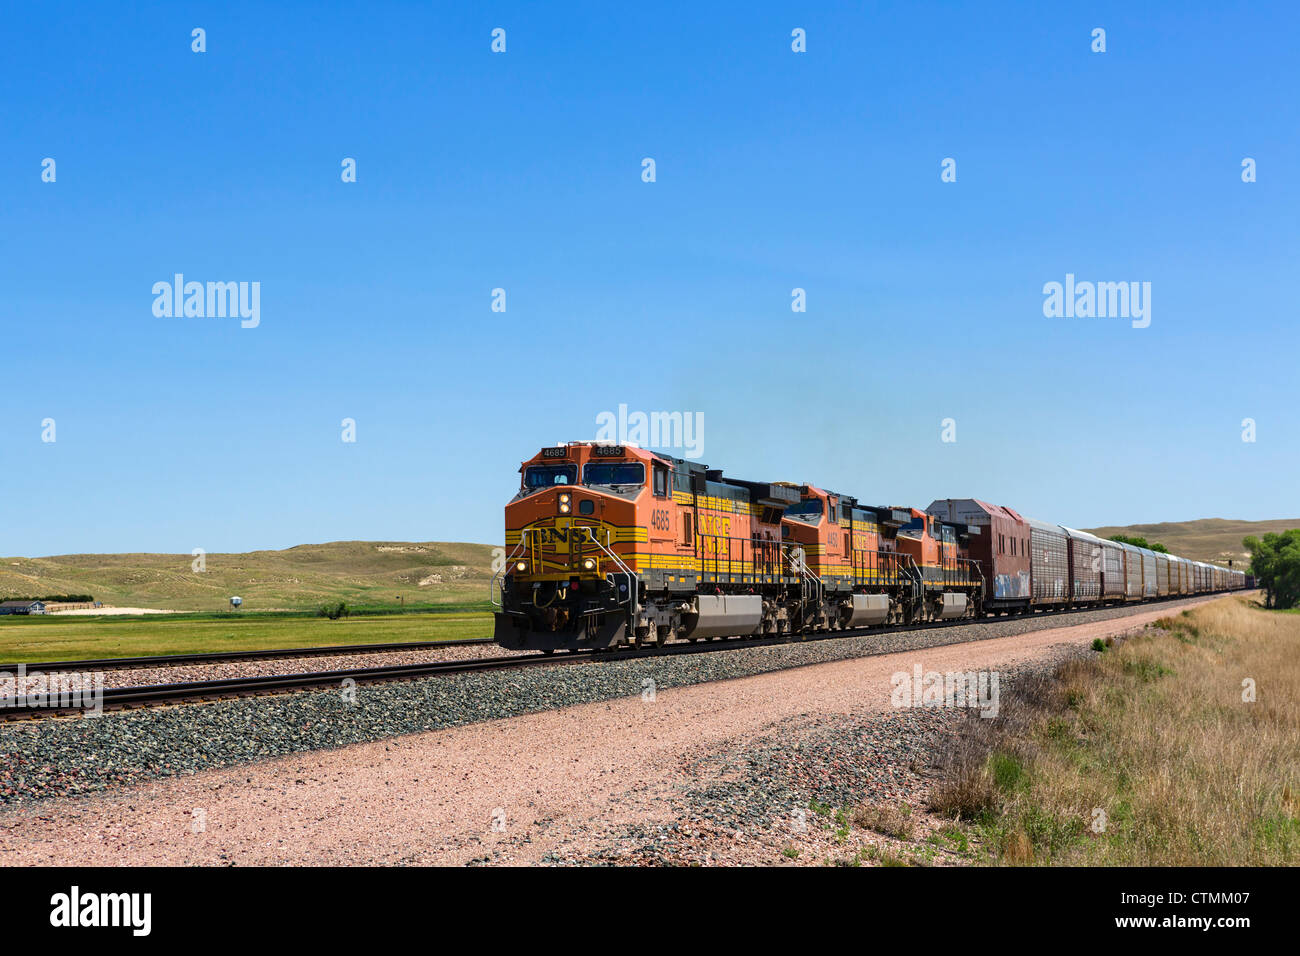 A 2km long freight train in rural Nebraska alongside the western portion of NE 2, Nebraska, USA - Stock Image